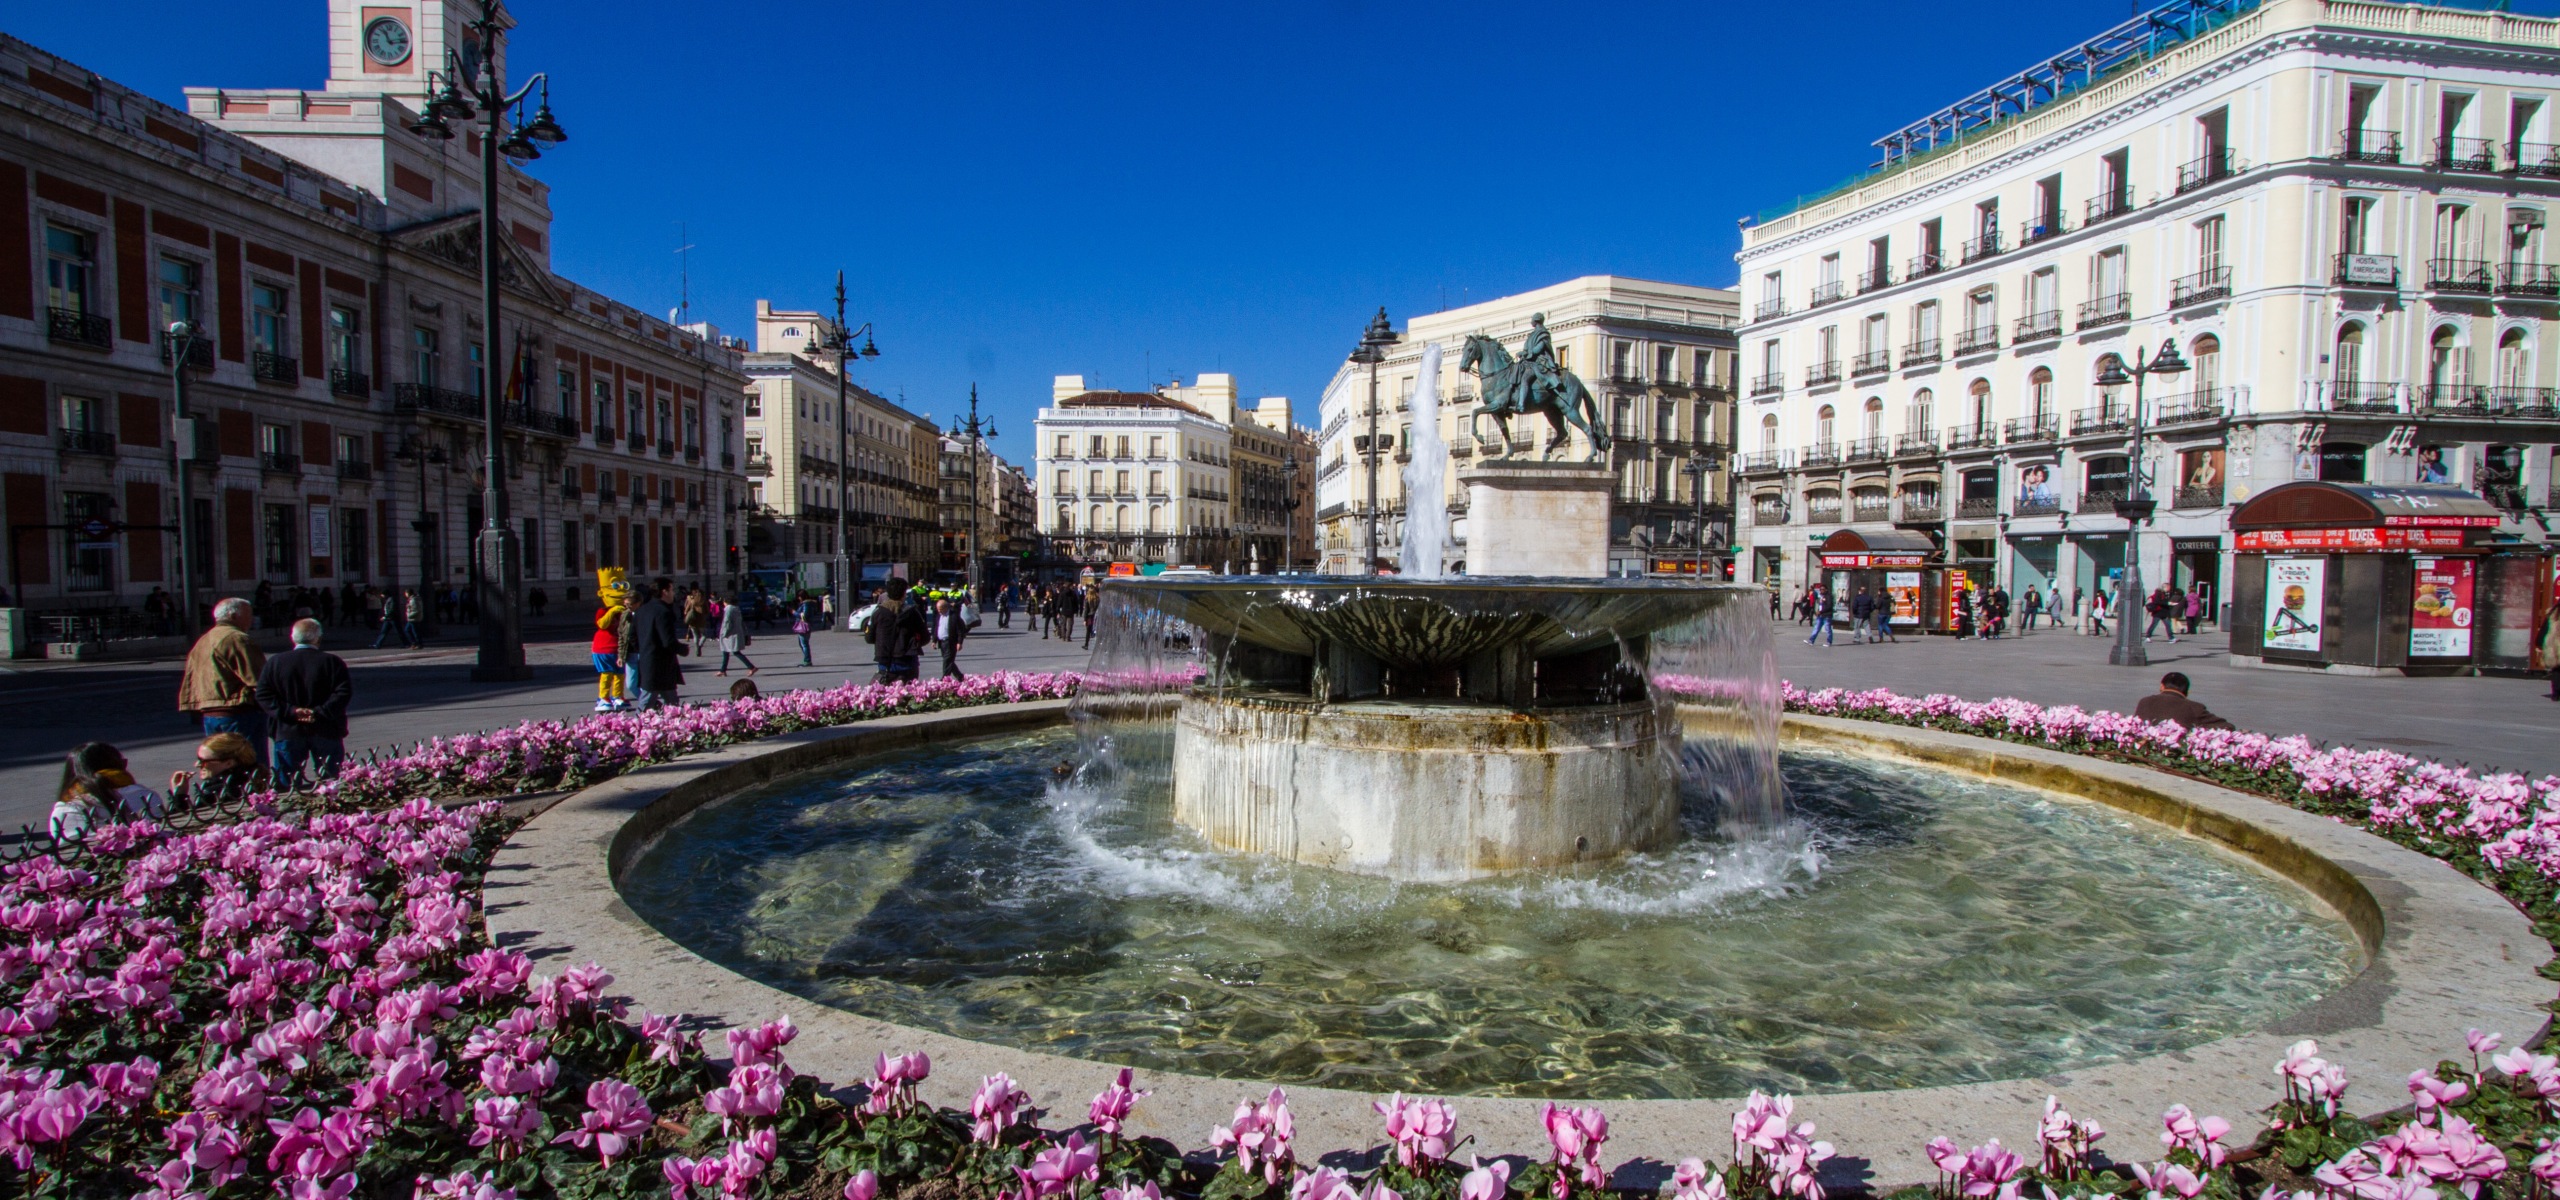 Puerta del So,things to do in Madrid